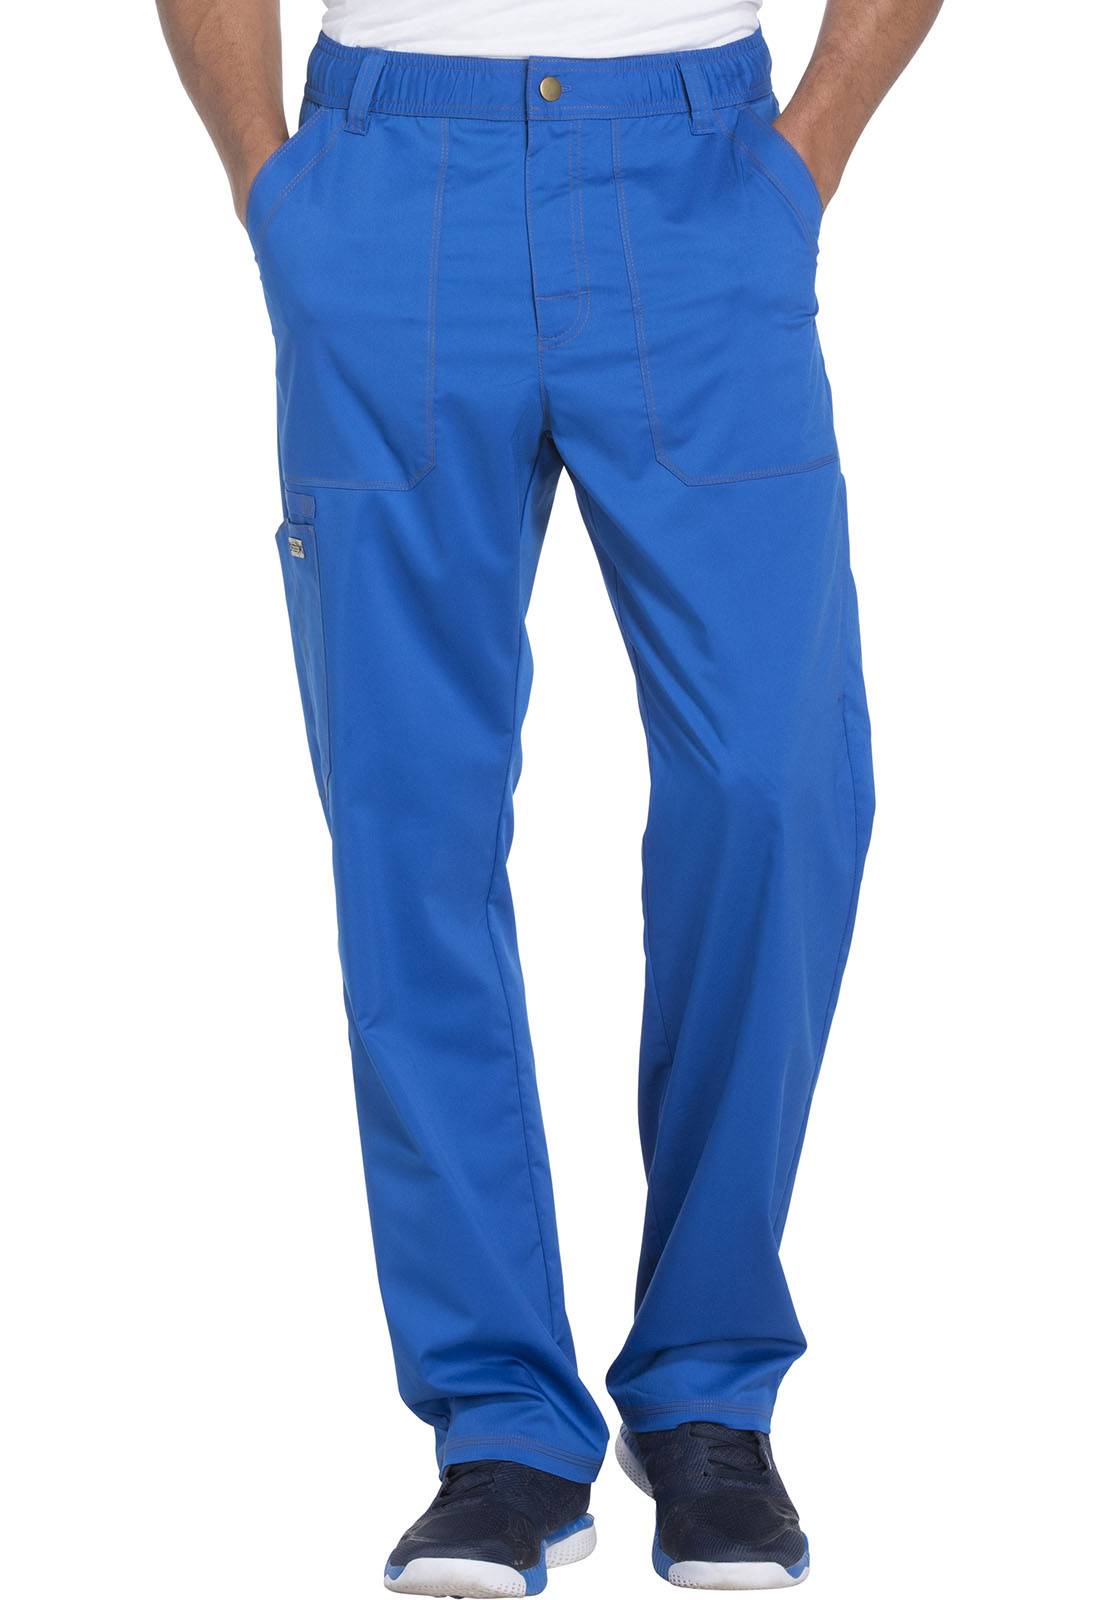 89df612fc9b Essence Men's Drawstring Zip Fly Pant in Royal DK160-ROY from The ...